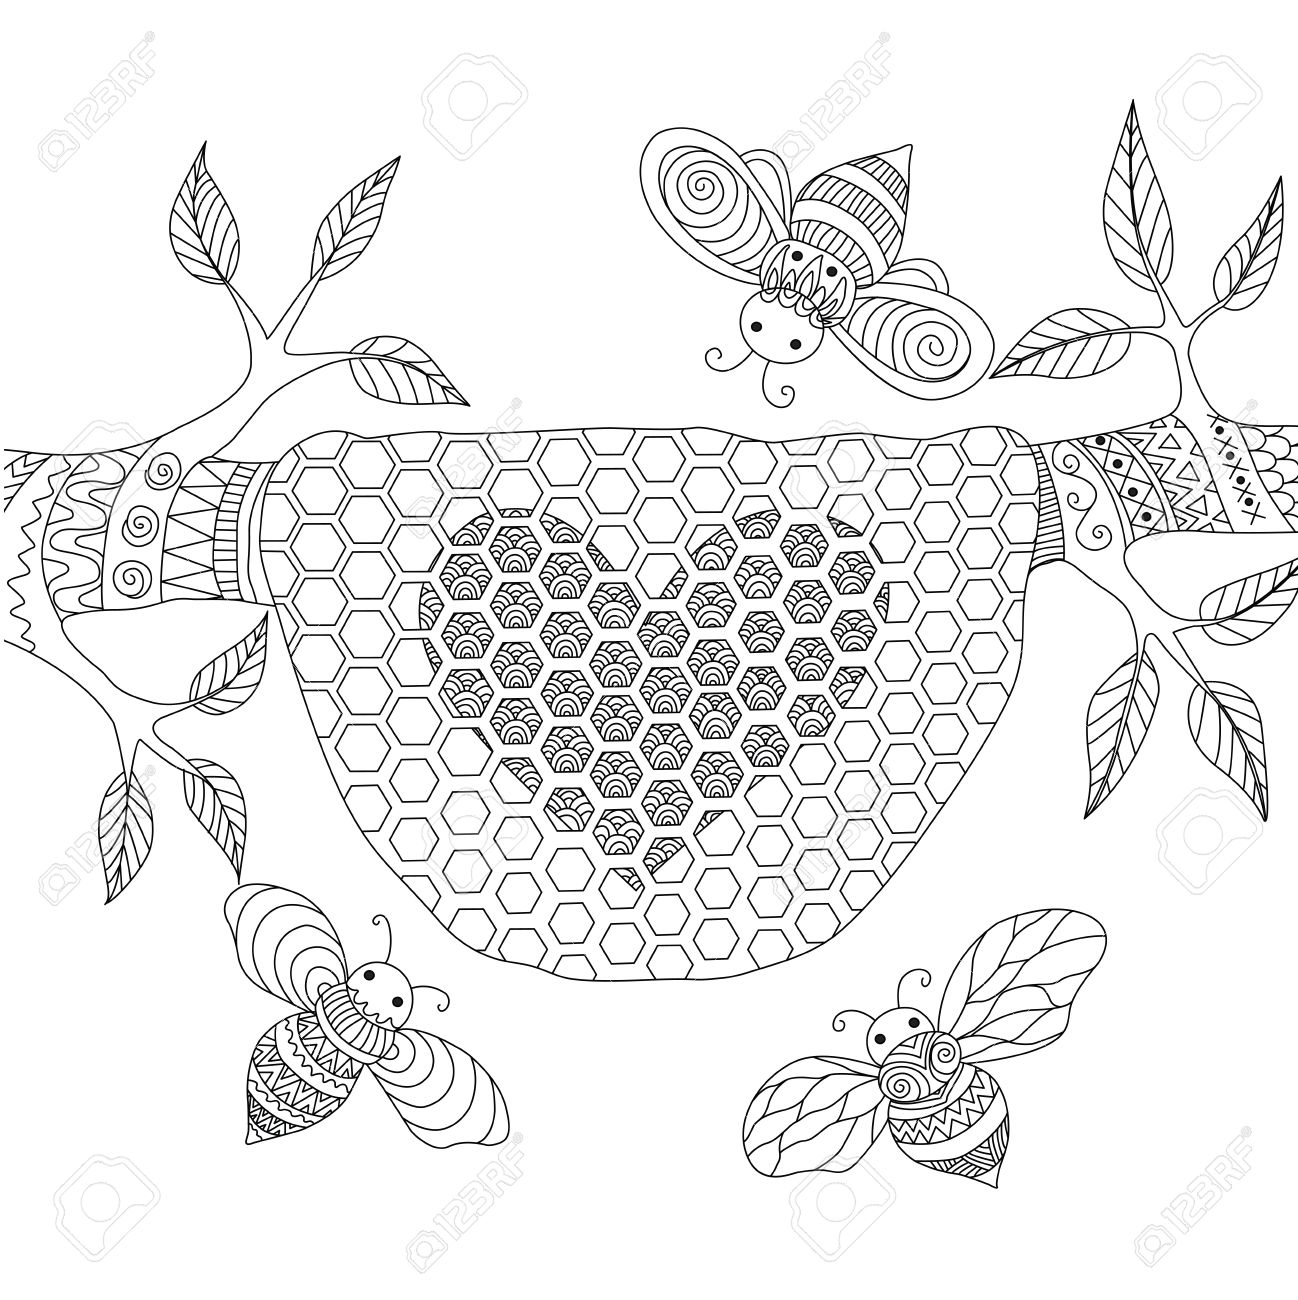 line art design of honey bees flying around beehive for coring